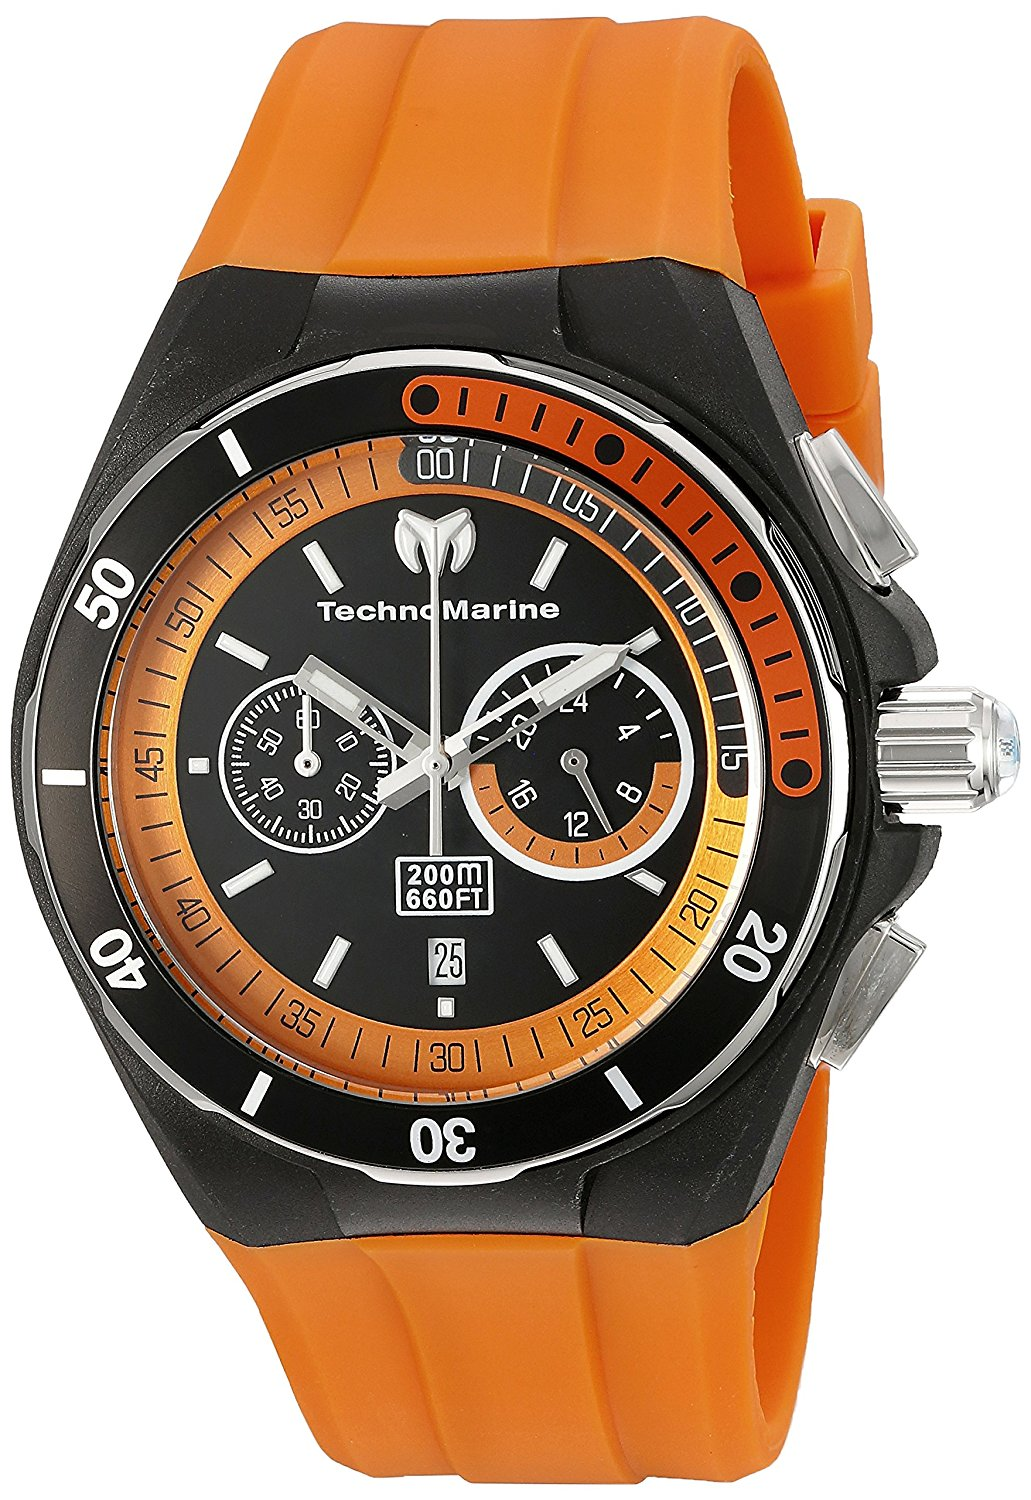 Technomarine Men's TM-115161 Cruise Sport Analog Display Quartz Orange Watch